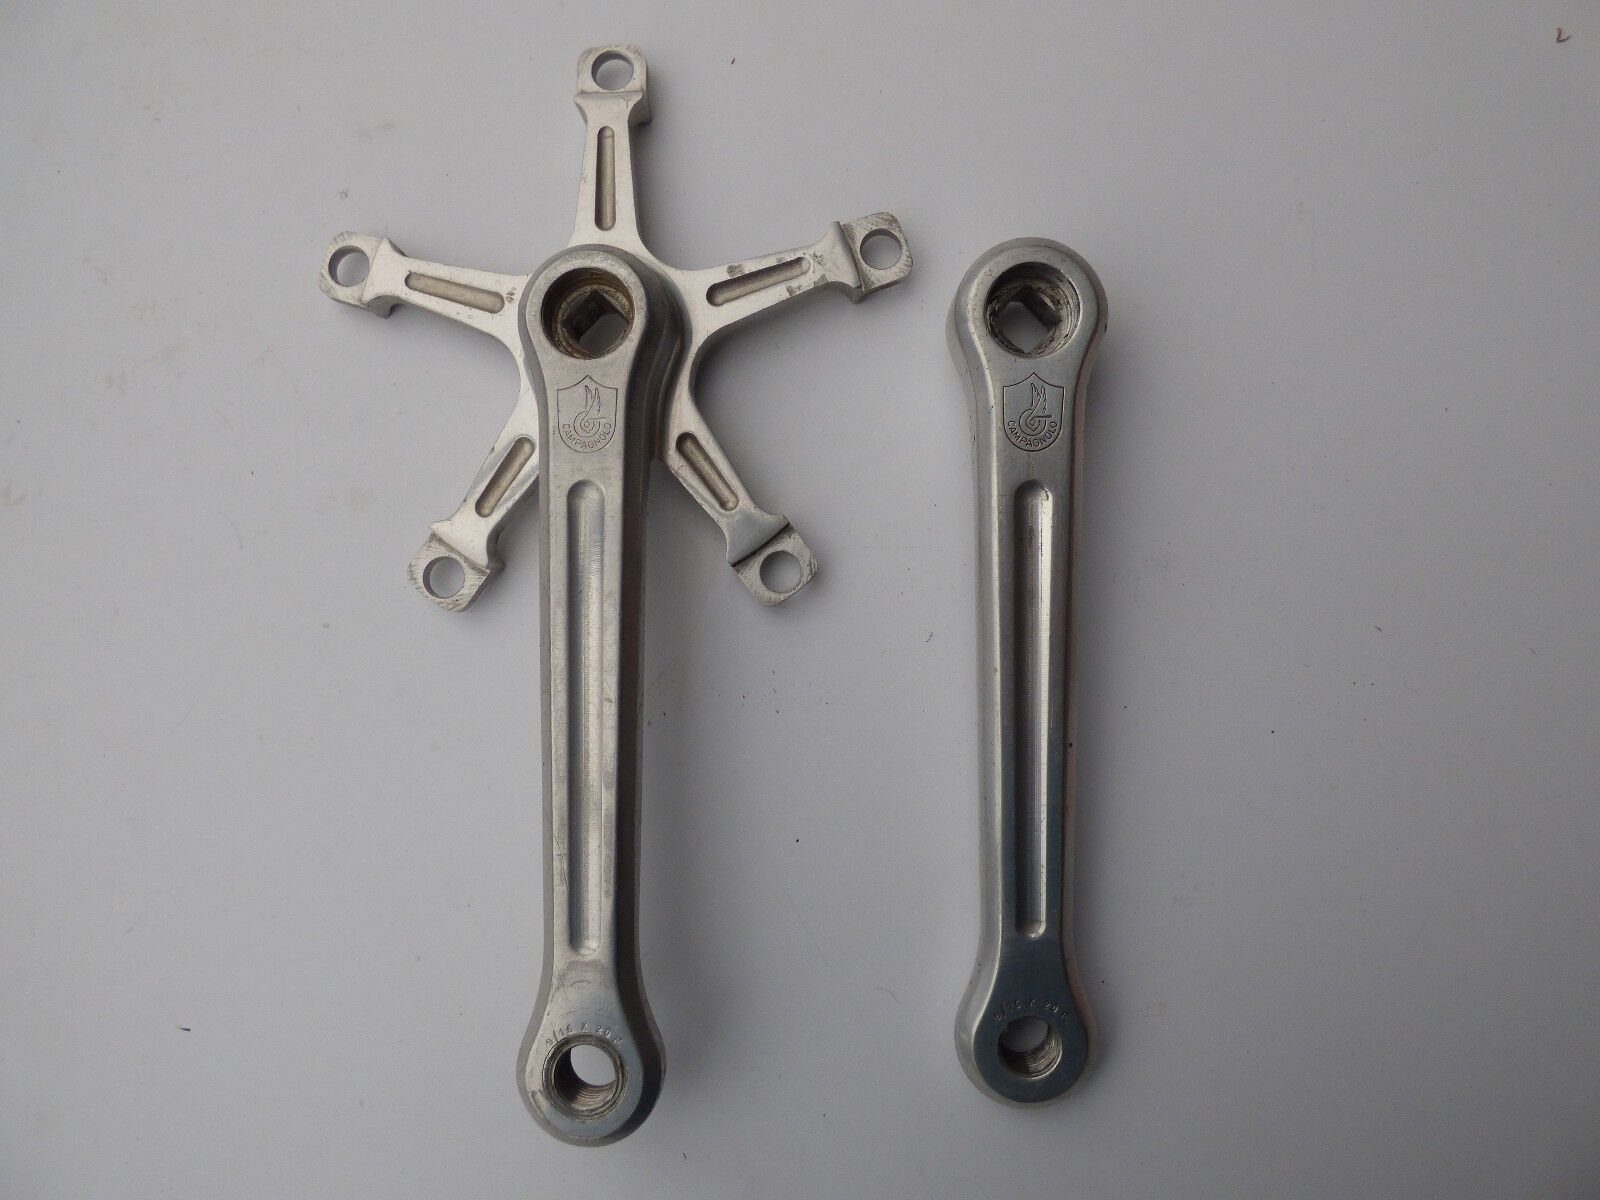 CAMPAGNOLO NUOVO RECORD CRANK ARMS - 1973 - 170 mm